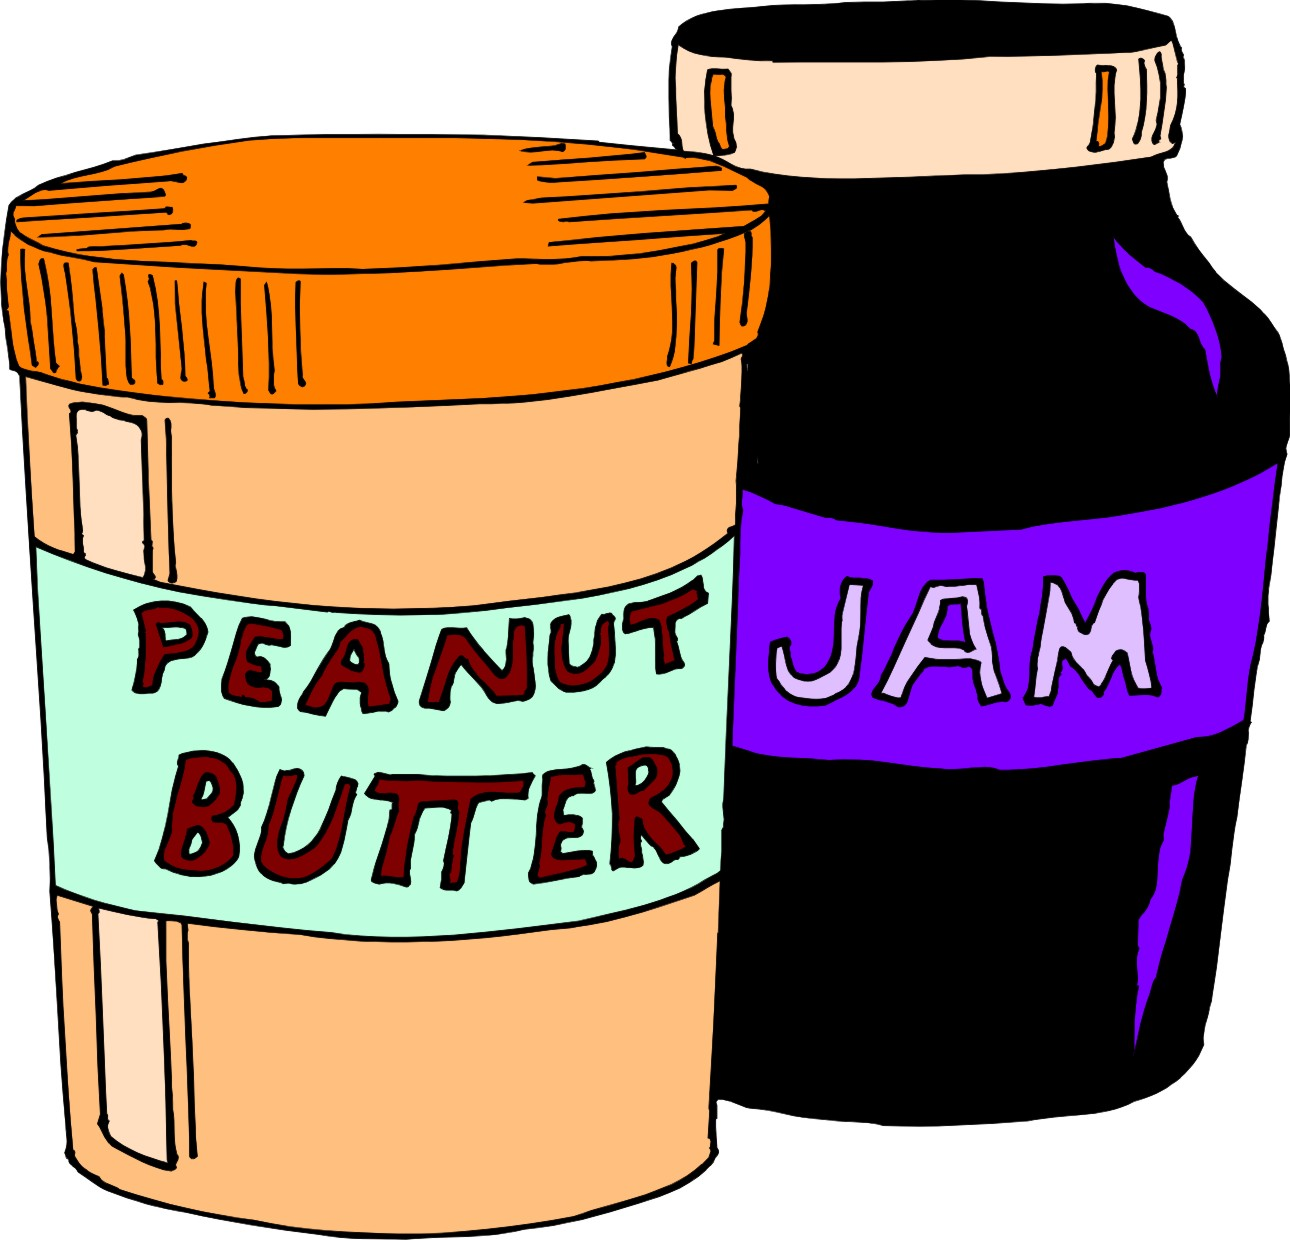 Peanut Butter Jelly Clip Art free image.